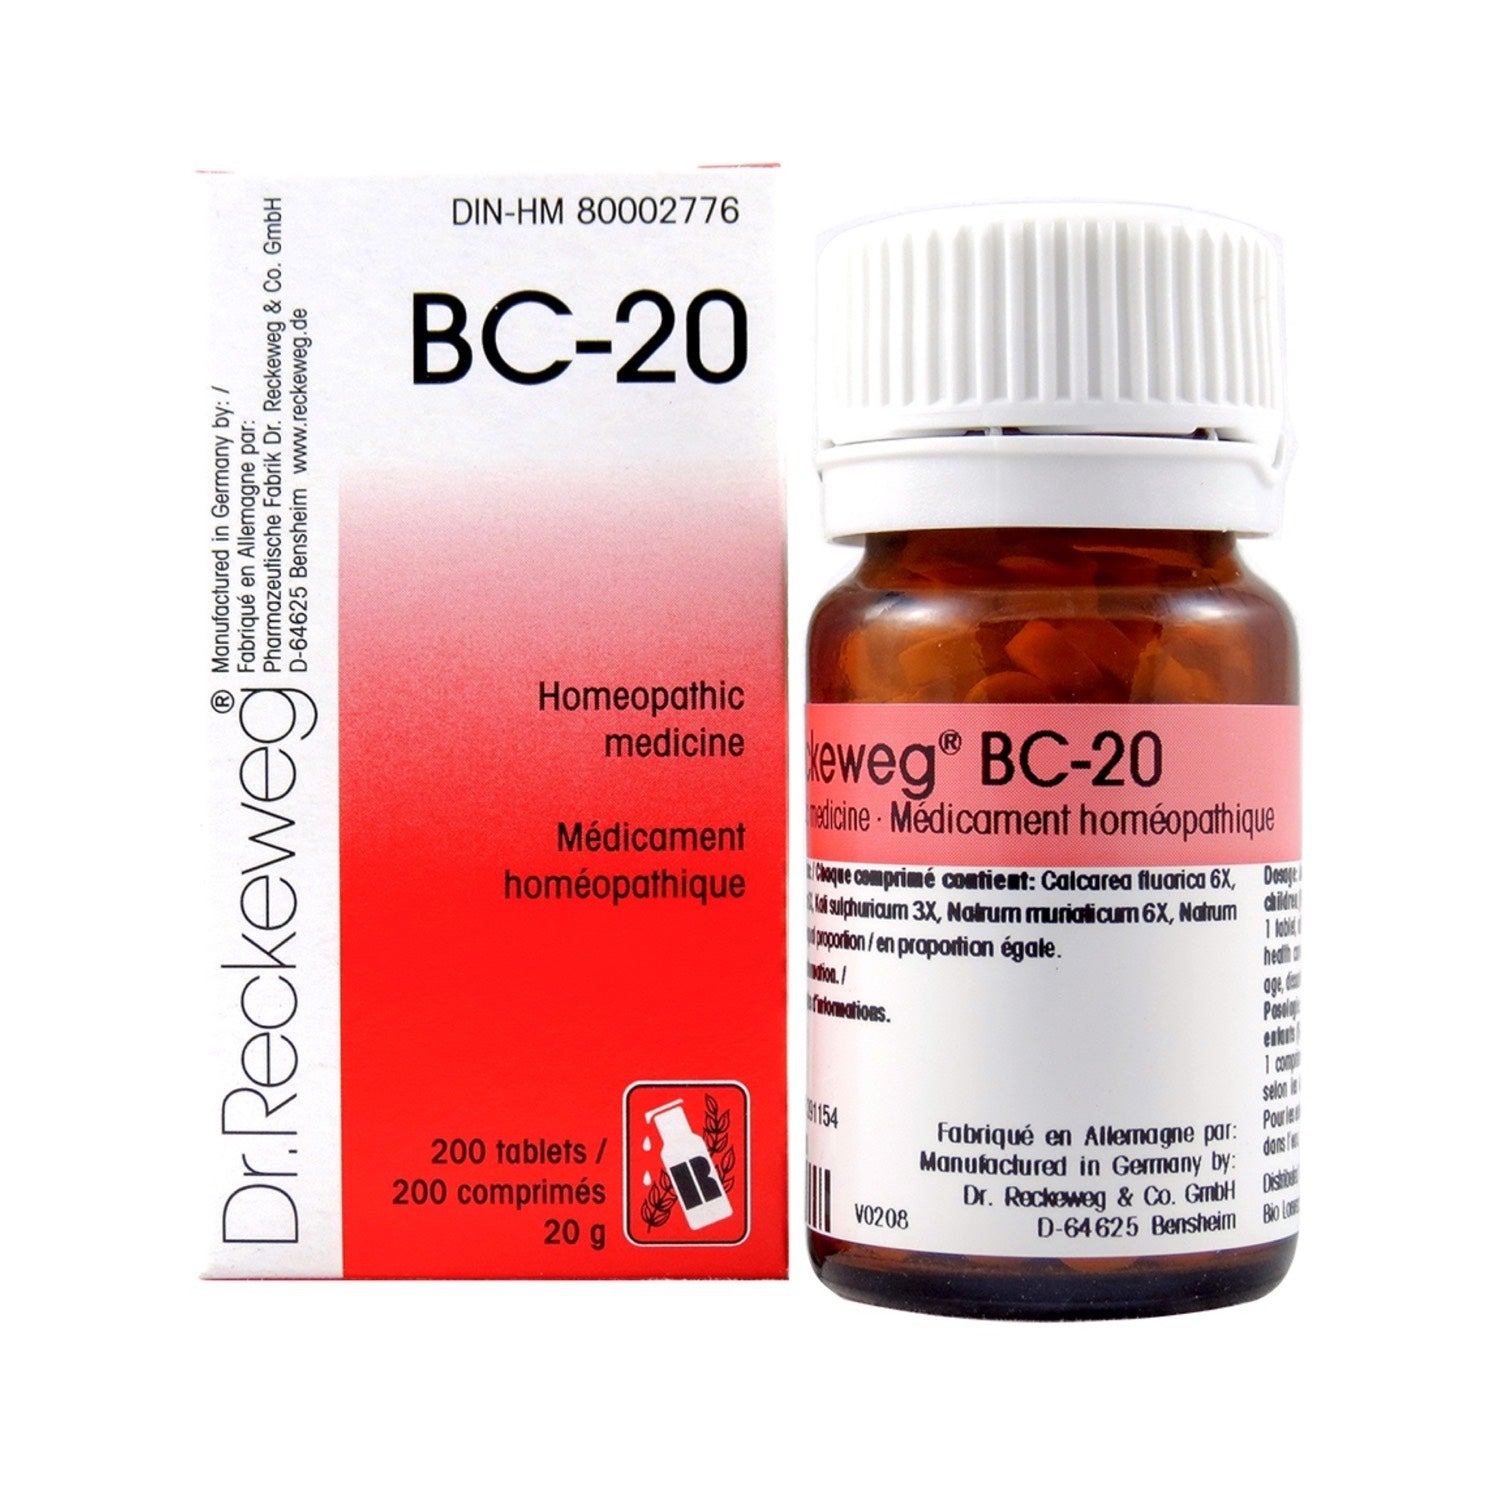 BC-20 Homeopathic medicine – Combination salt  200 tablets (20 g)